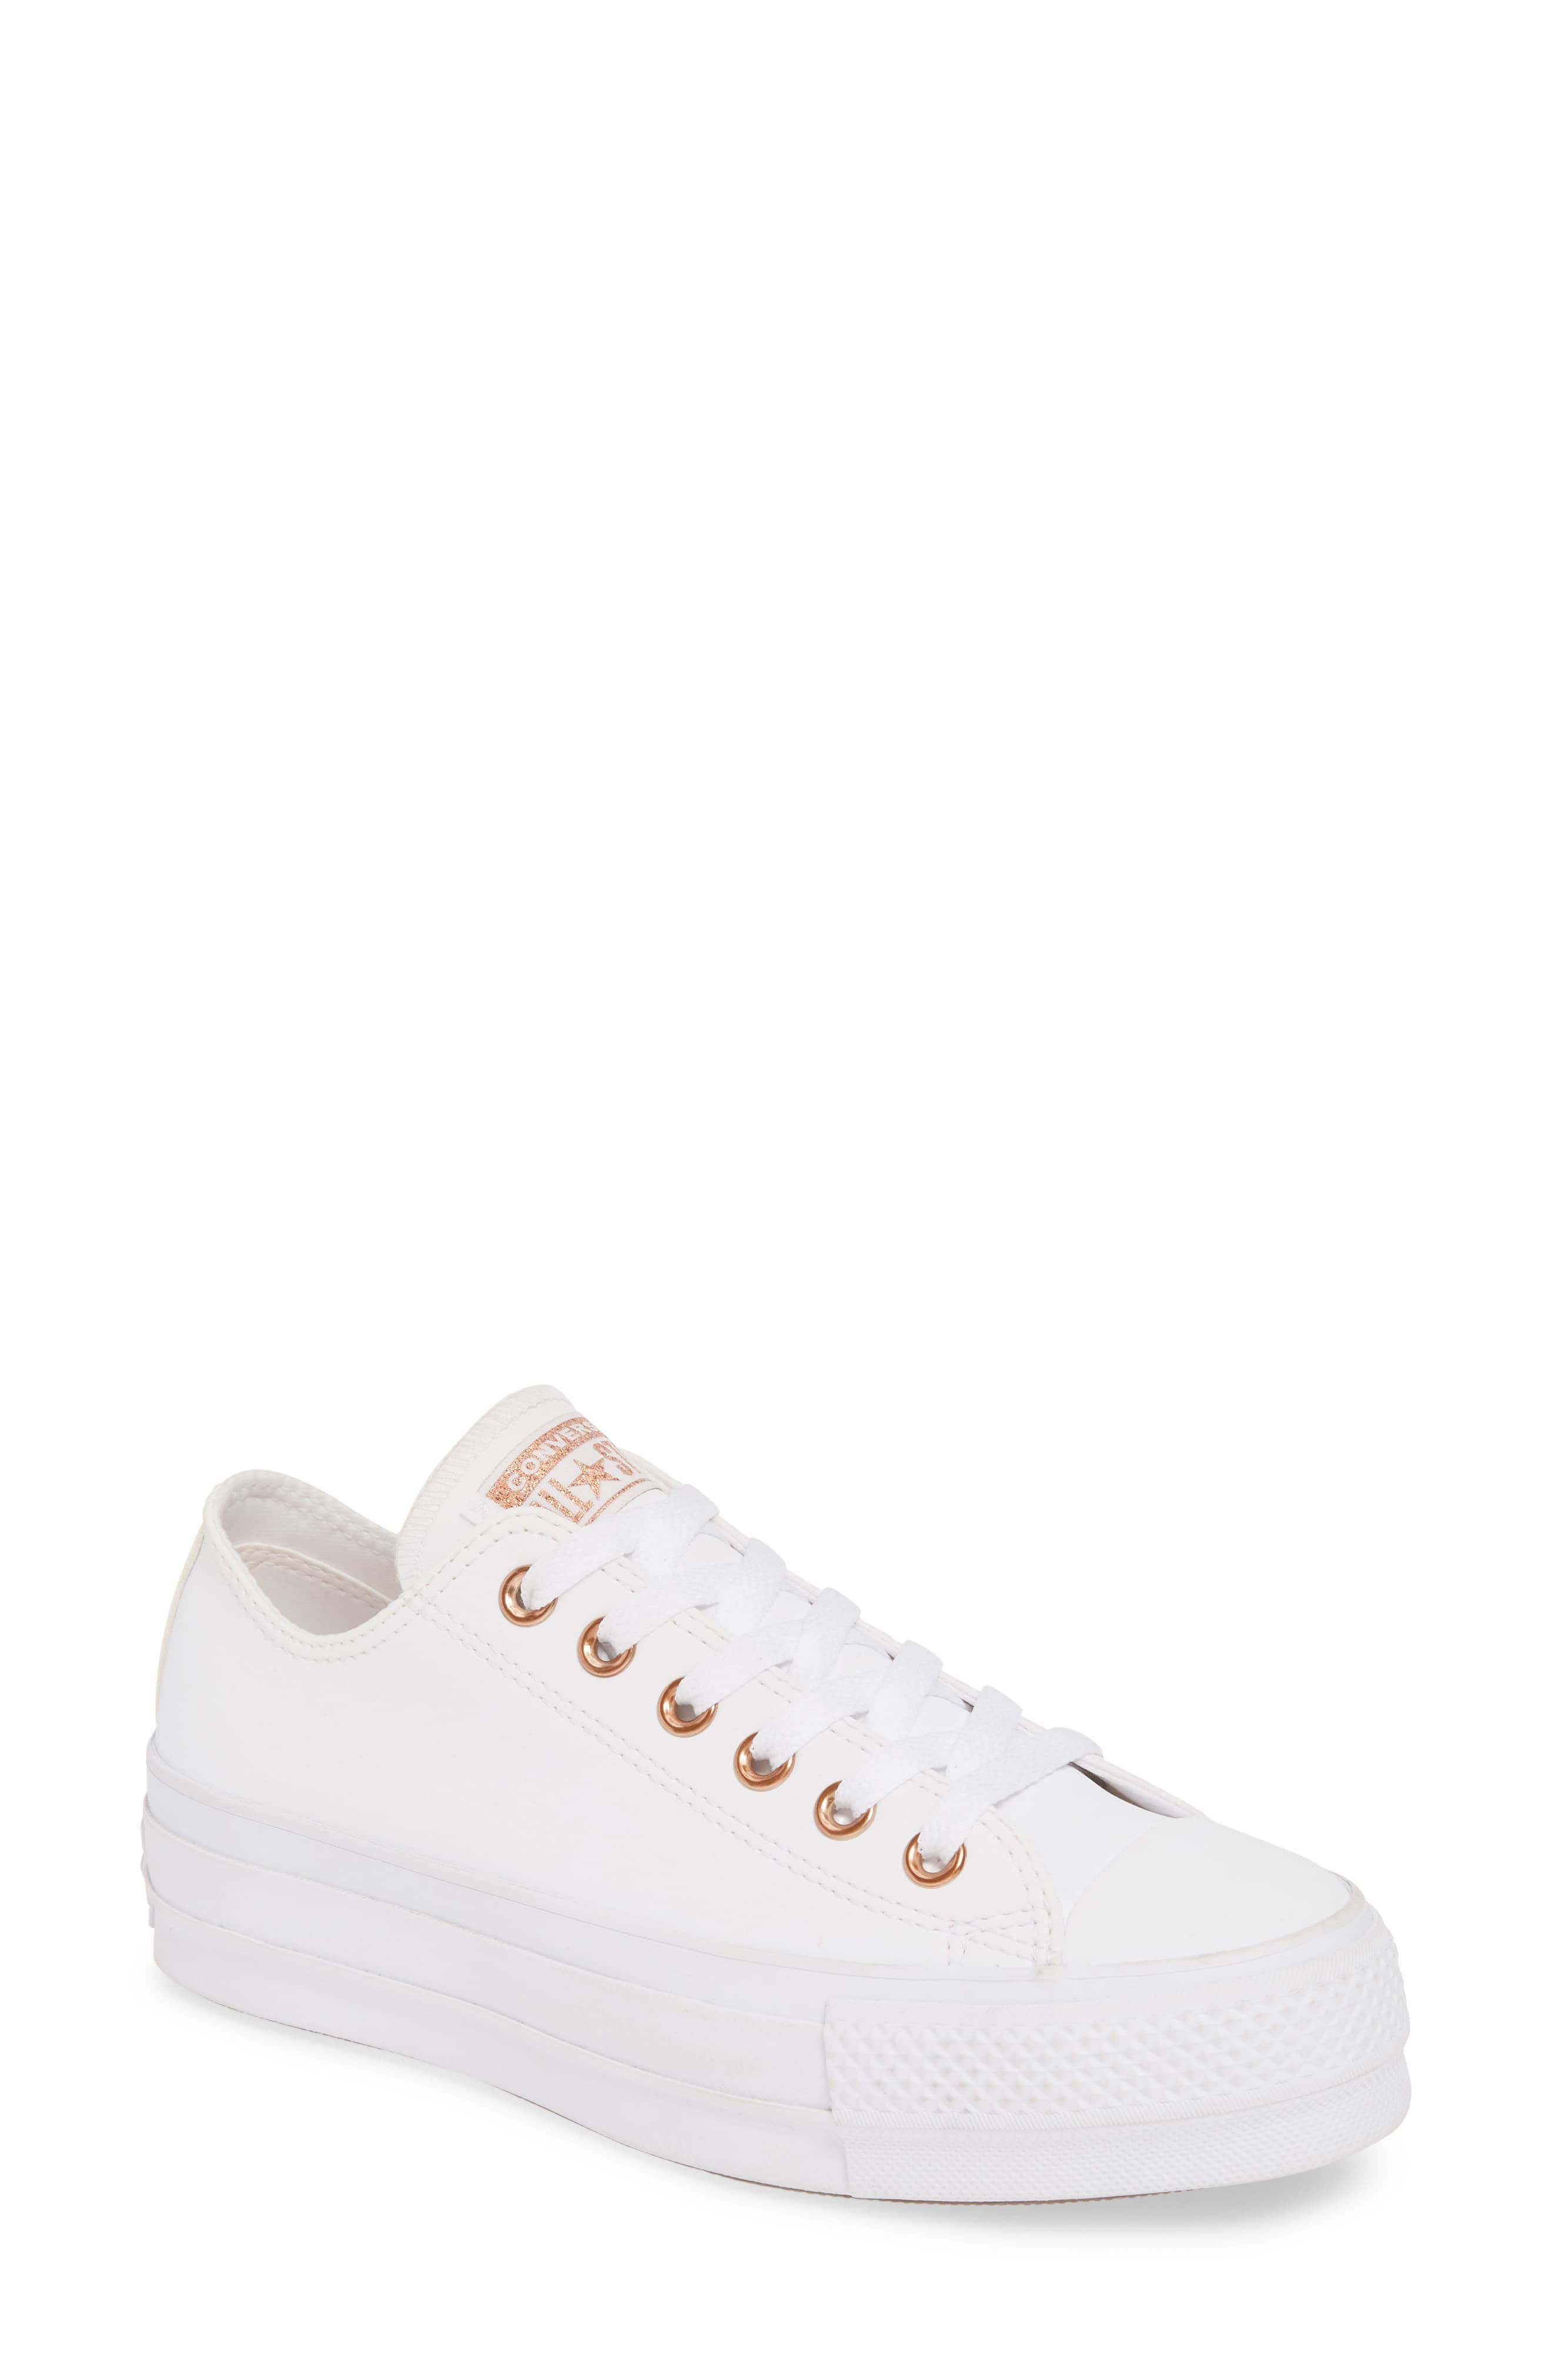 womens white and rose gold converse